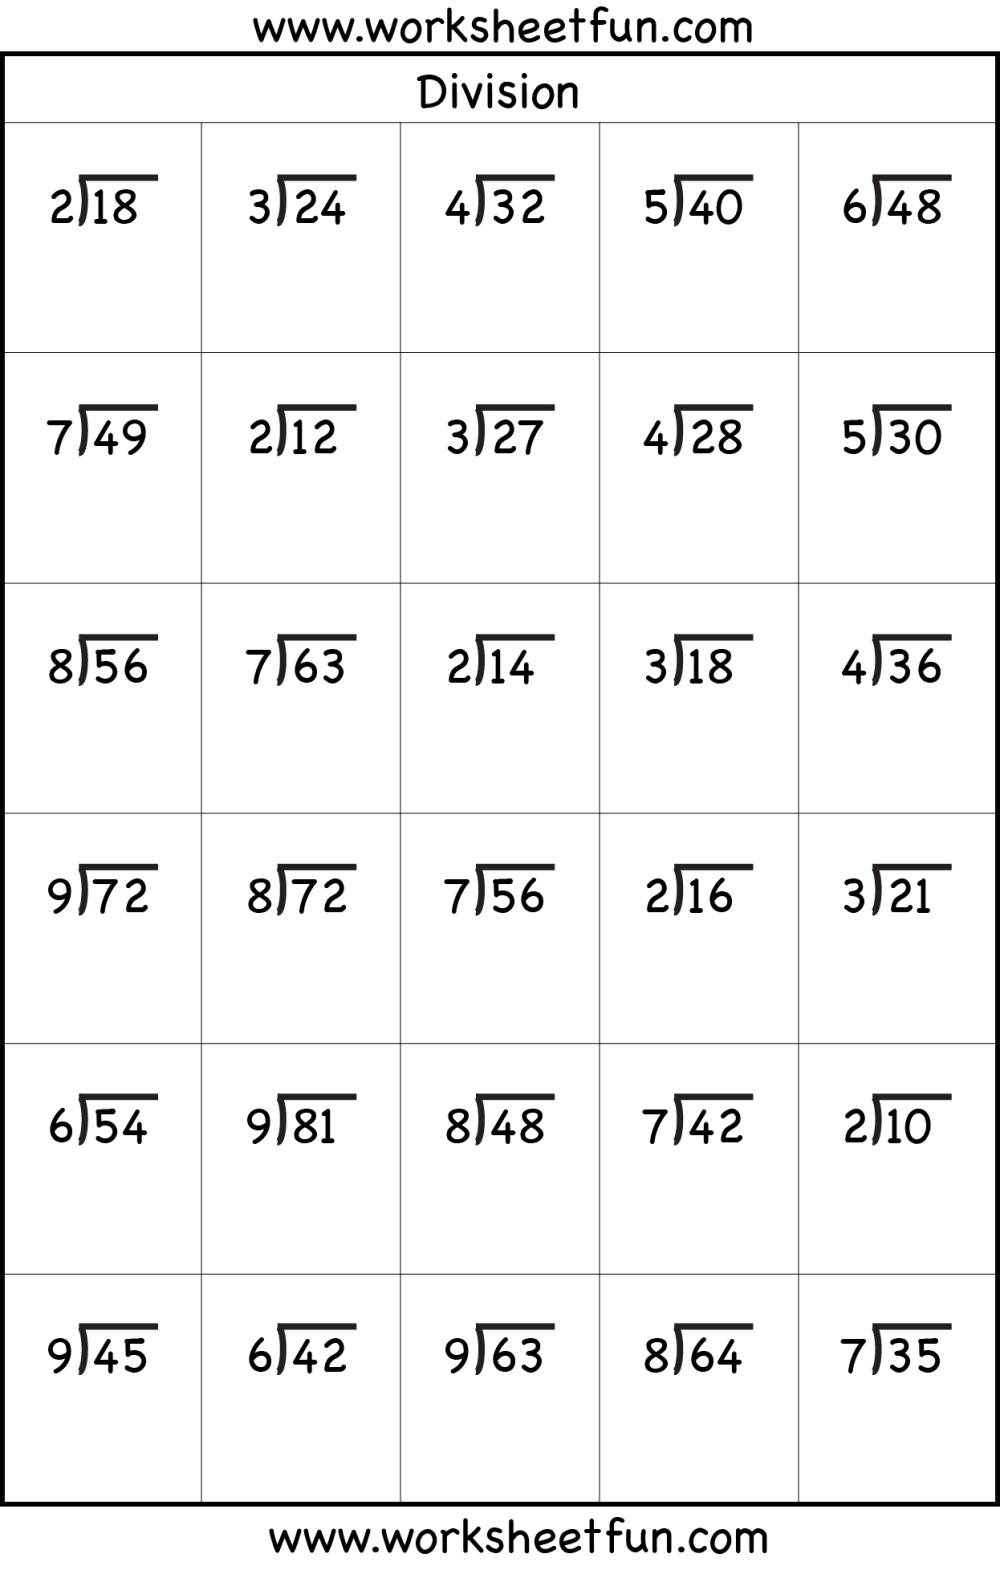 medium resolution of Pin By Dip$ On Divit   Math Division Worksheets